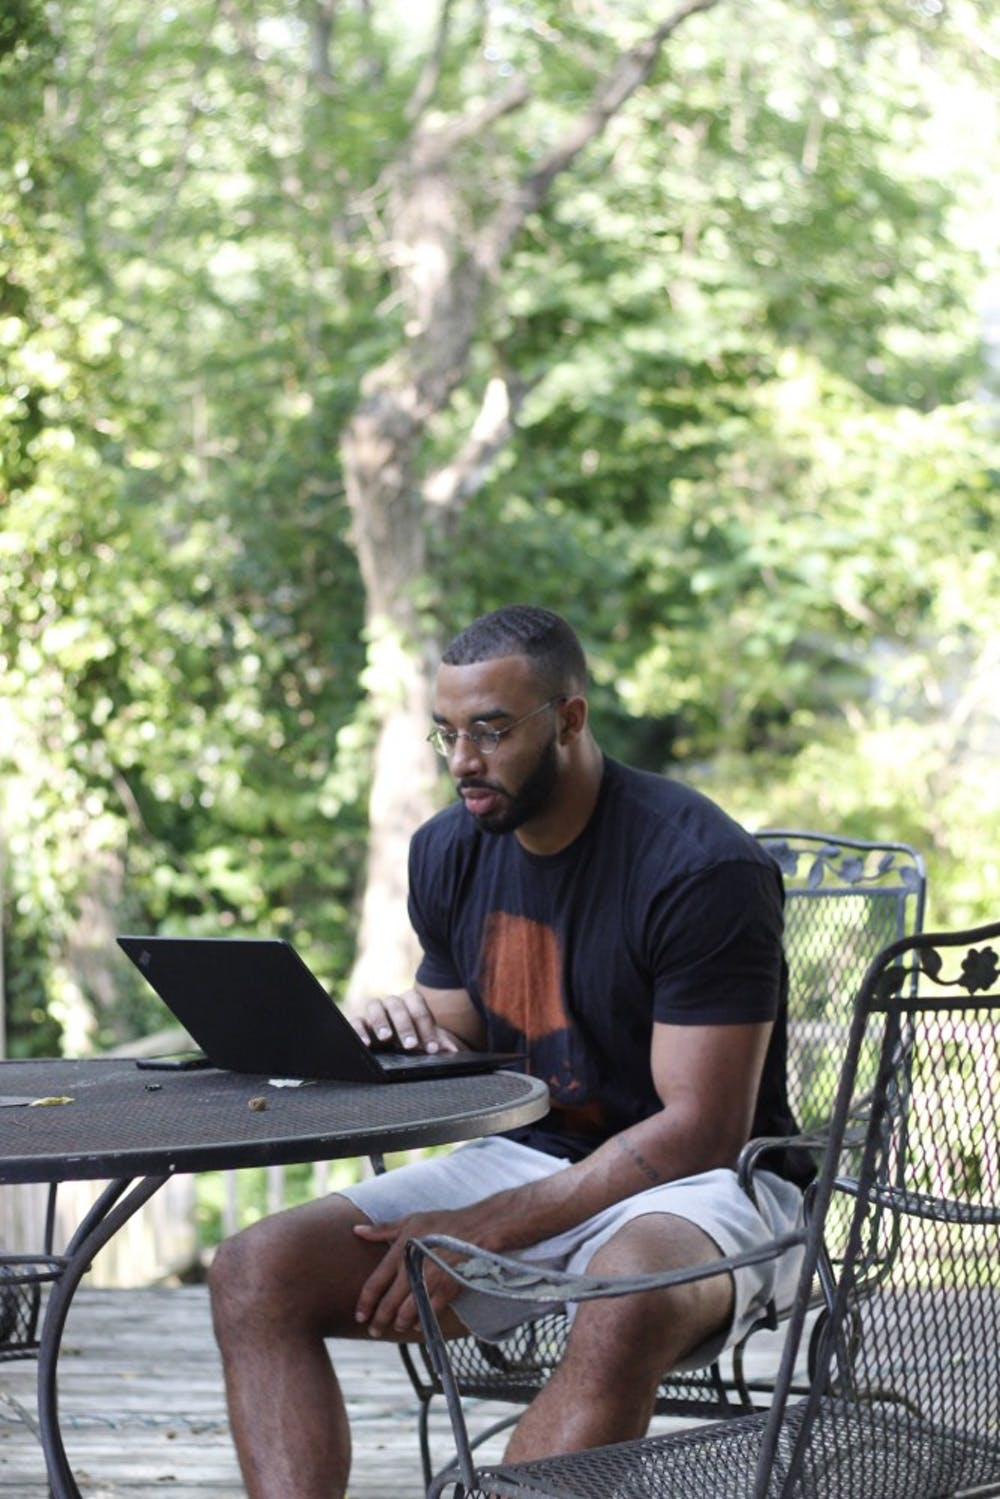 <p>Jake Lawler sitting down to write.&nbsp;</p> <p>Photo courtesy of Jake Lawler.</p>